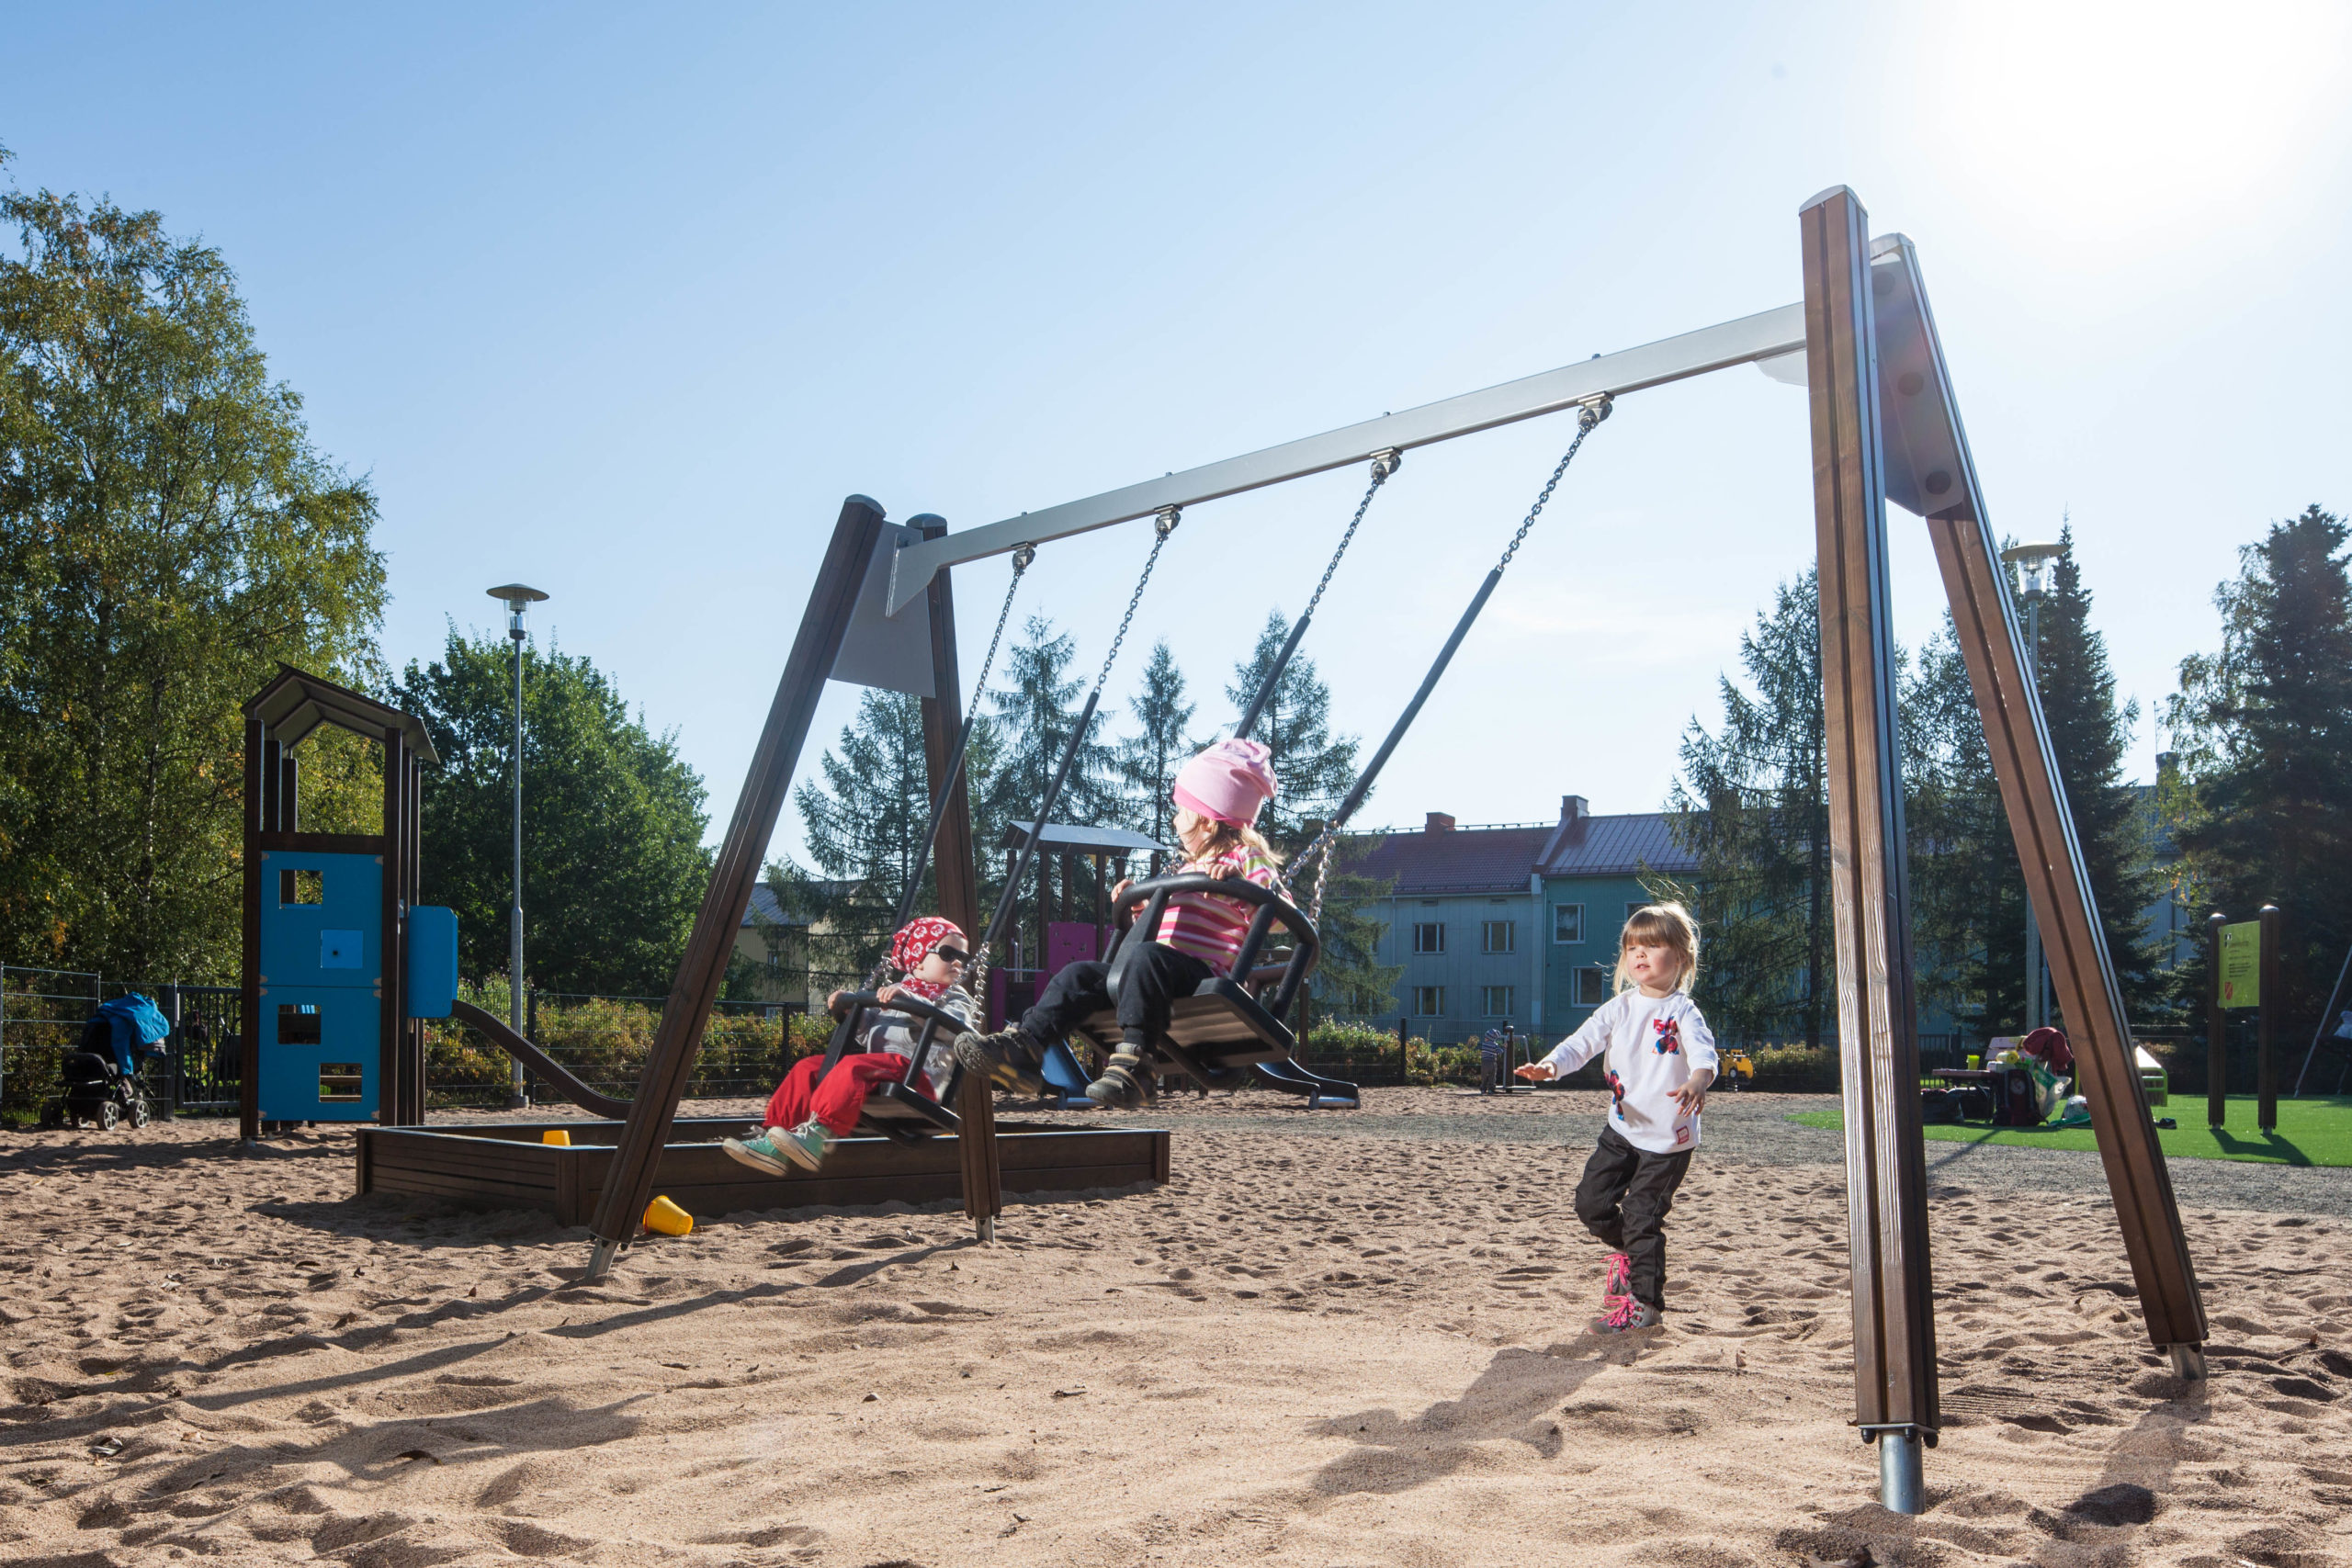 swing set in park with child cradle seat